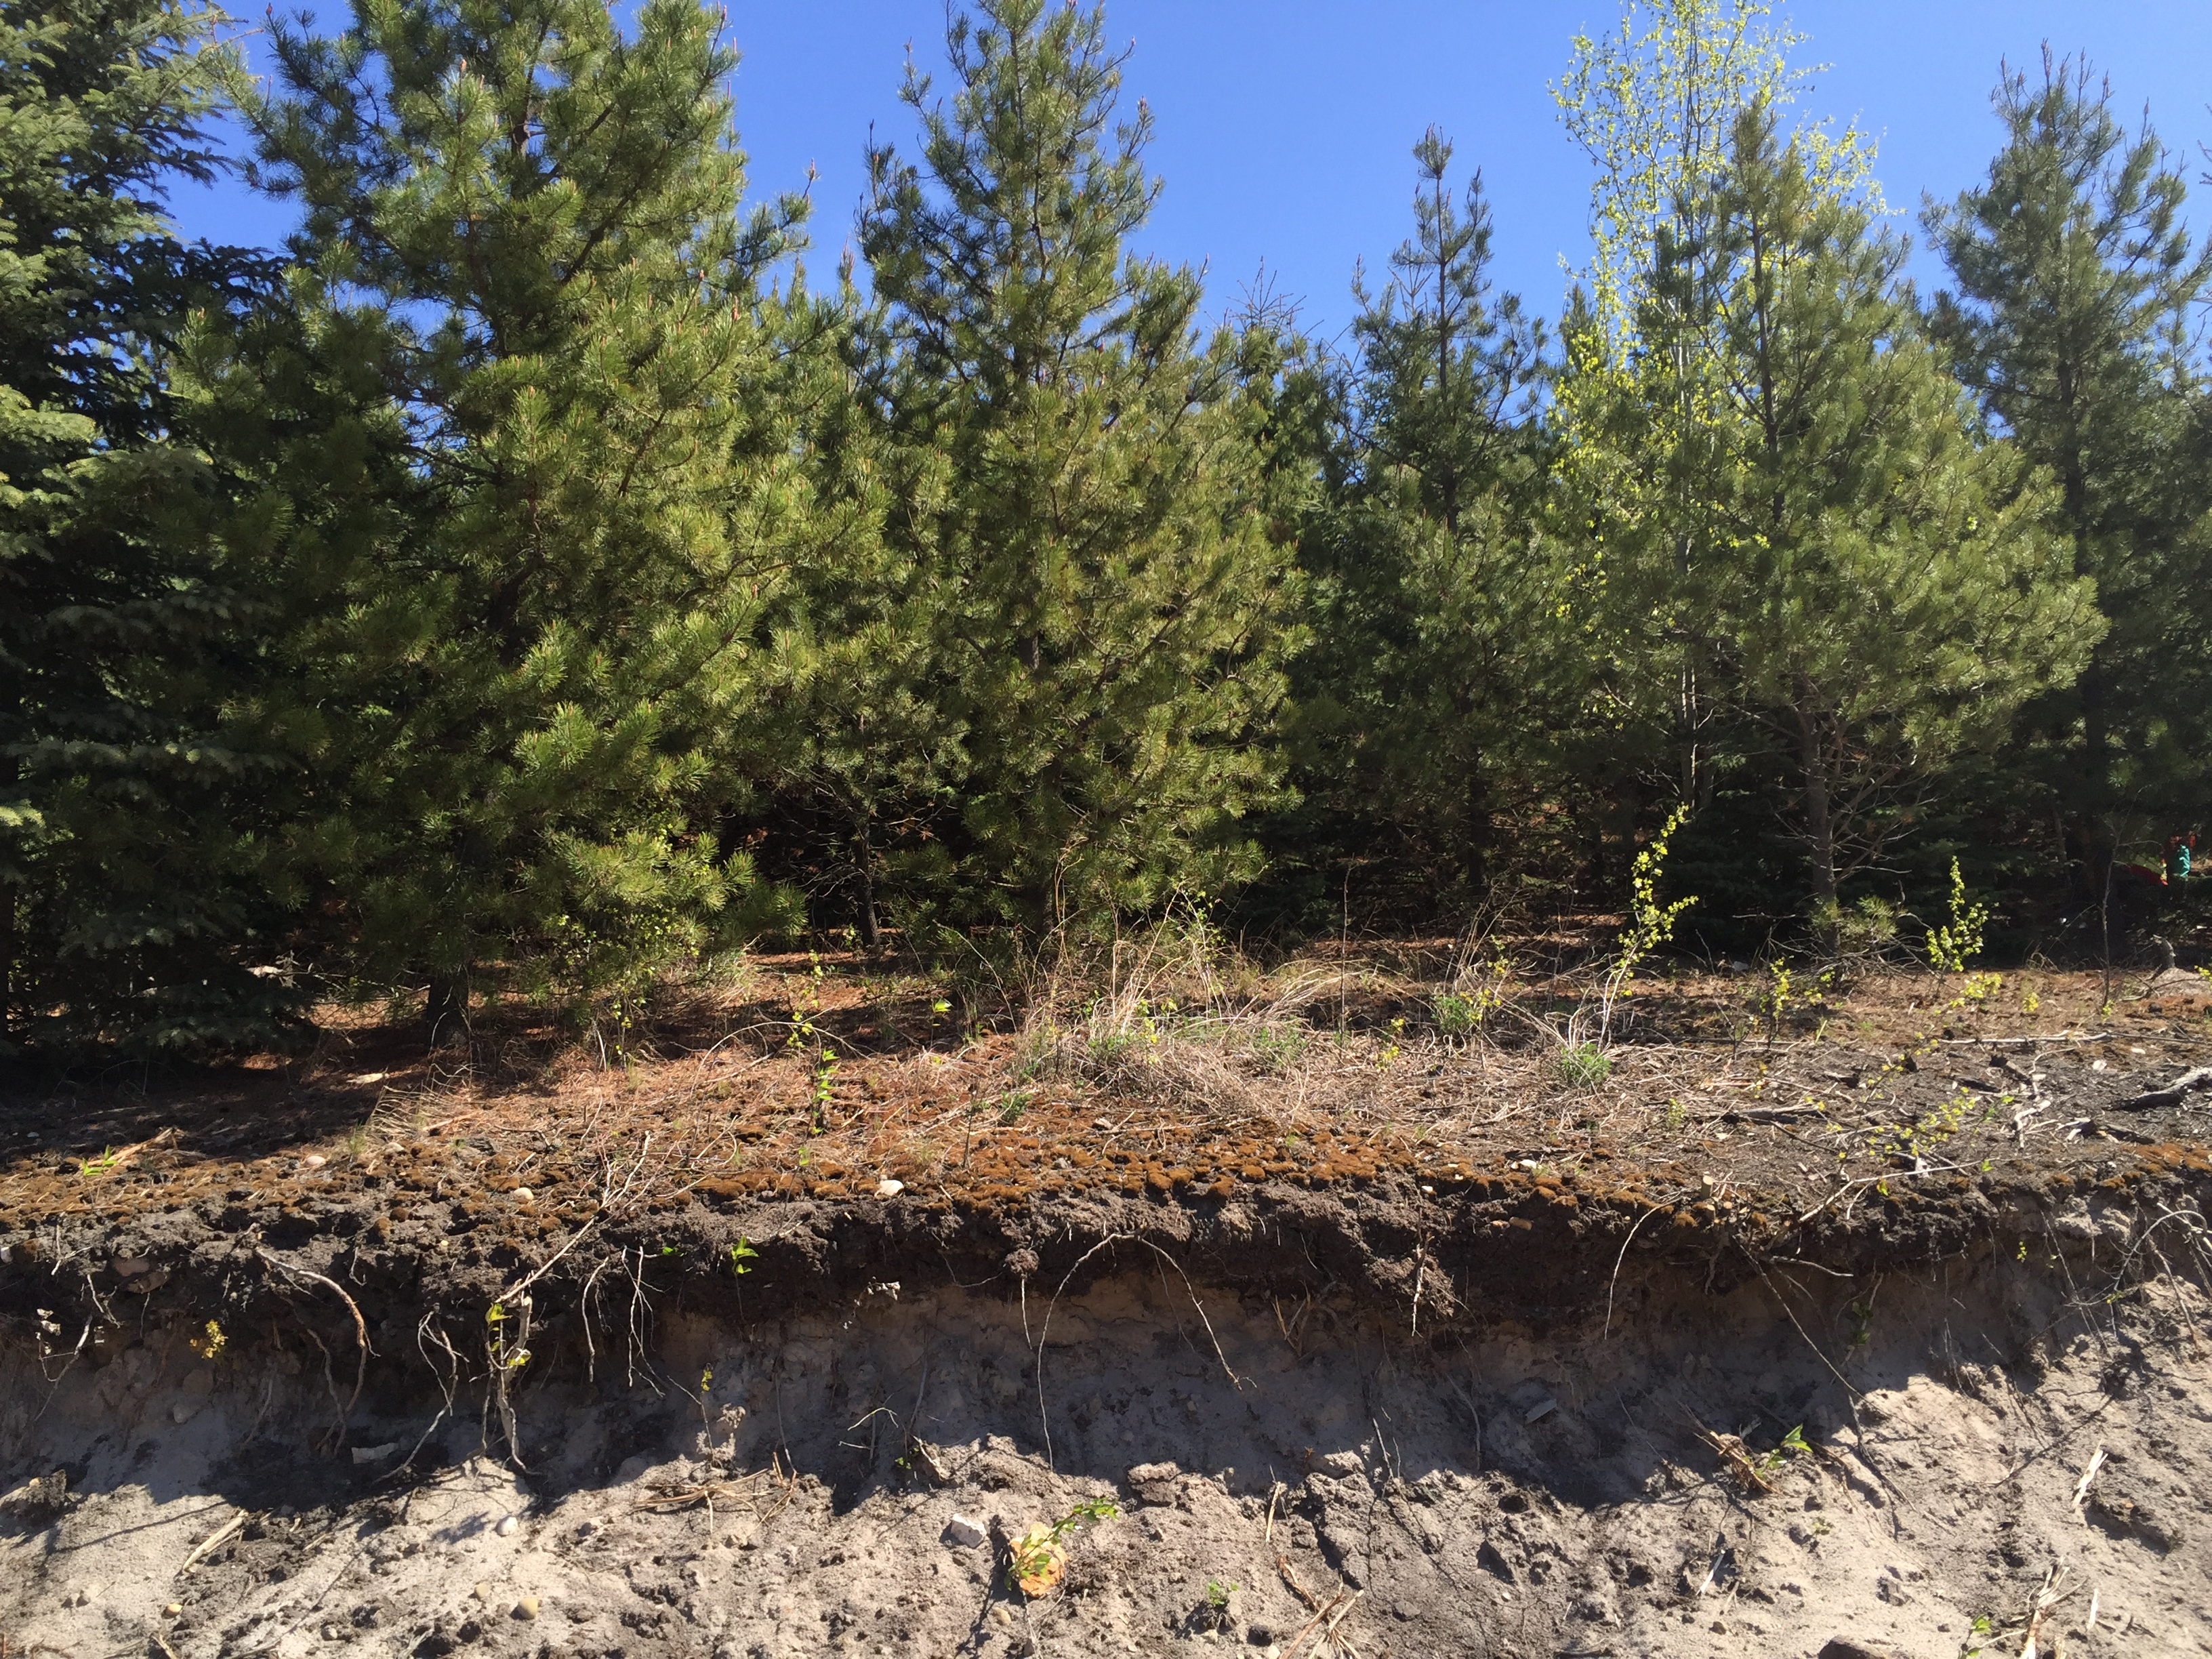 A cut away view of an engineered soil cap covering tailing sands, supporting advanced pine tree regeneration